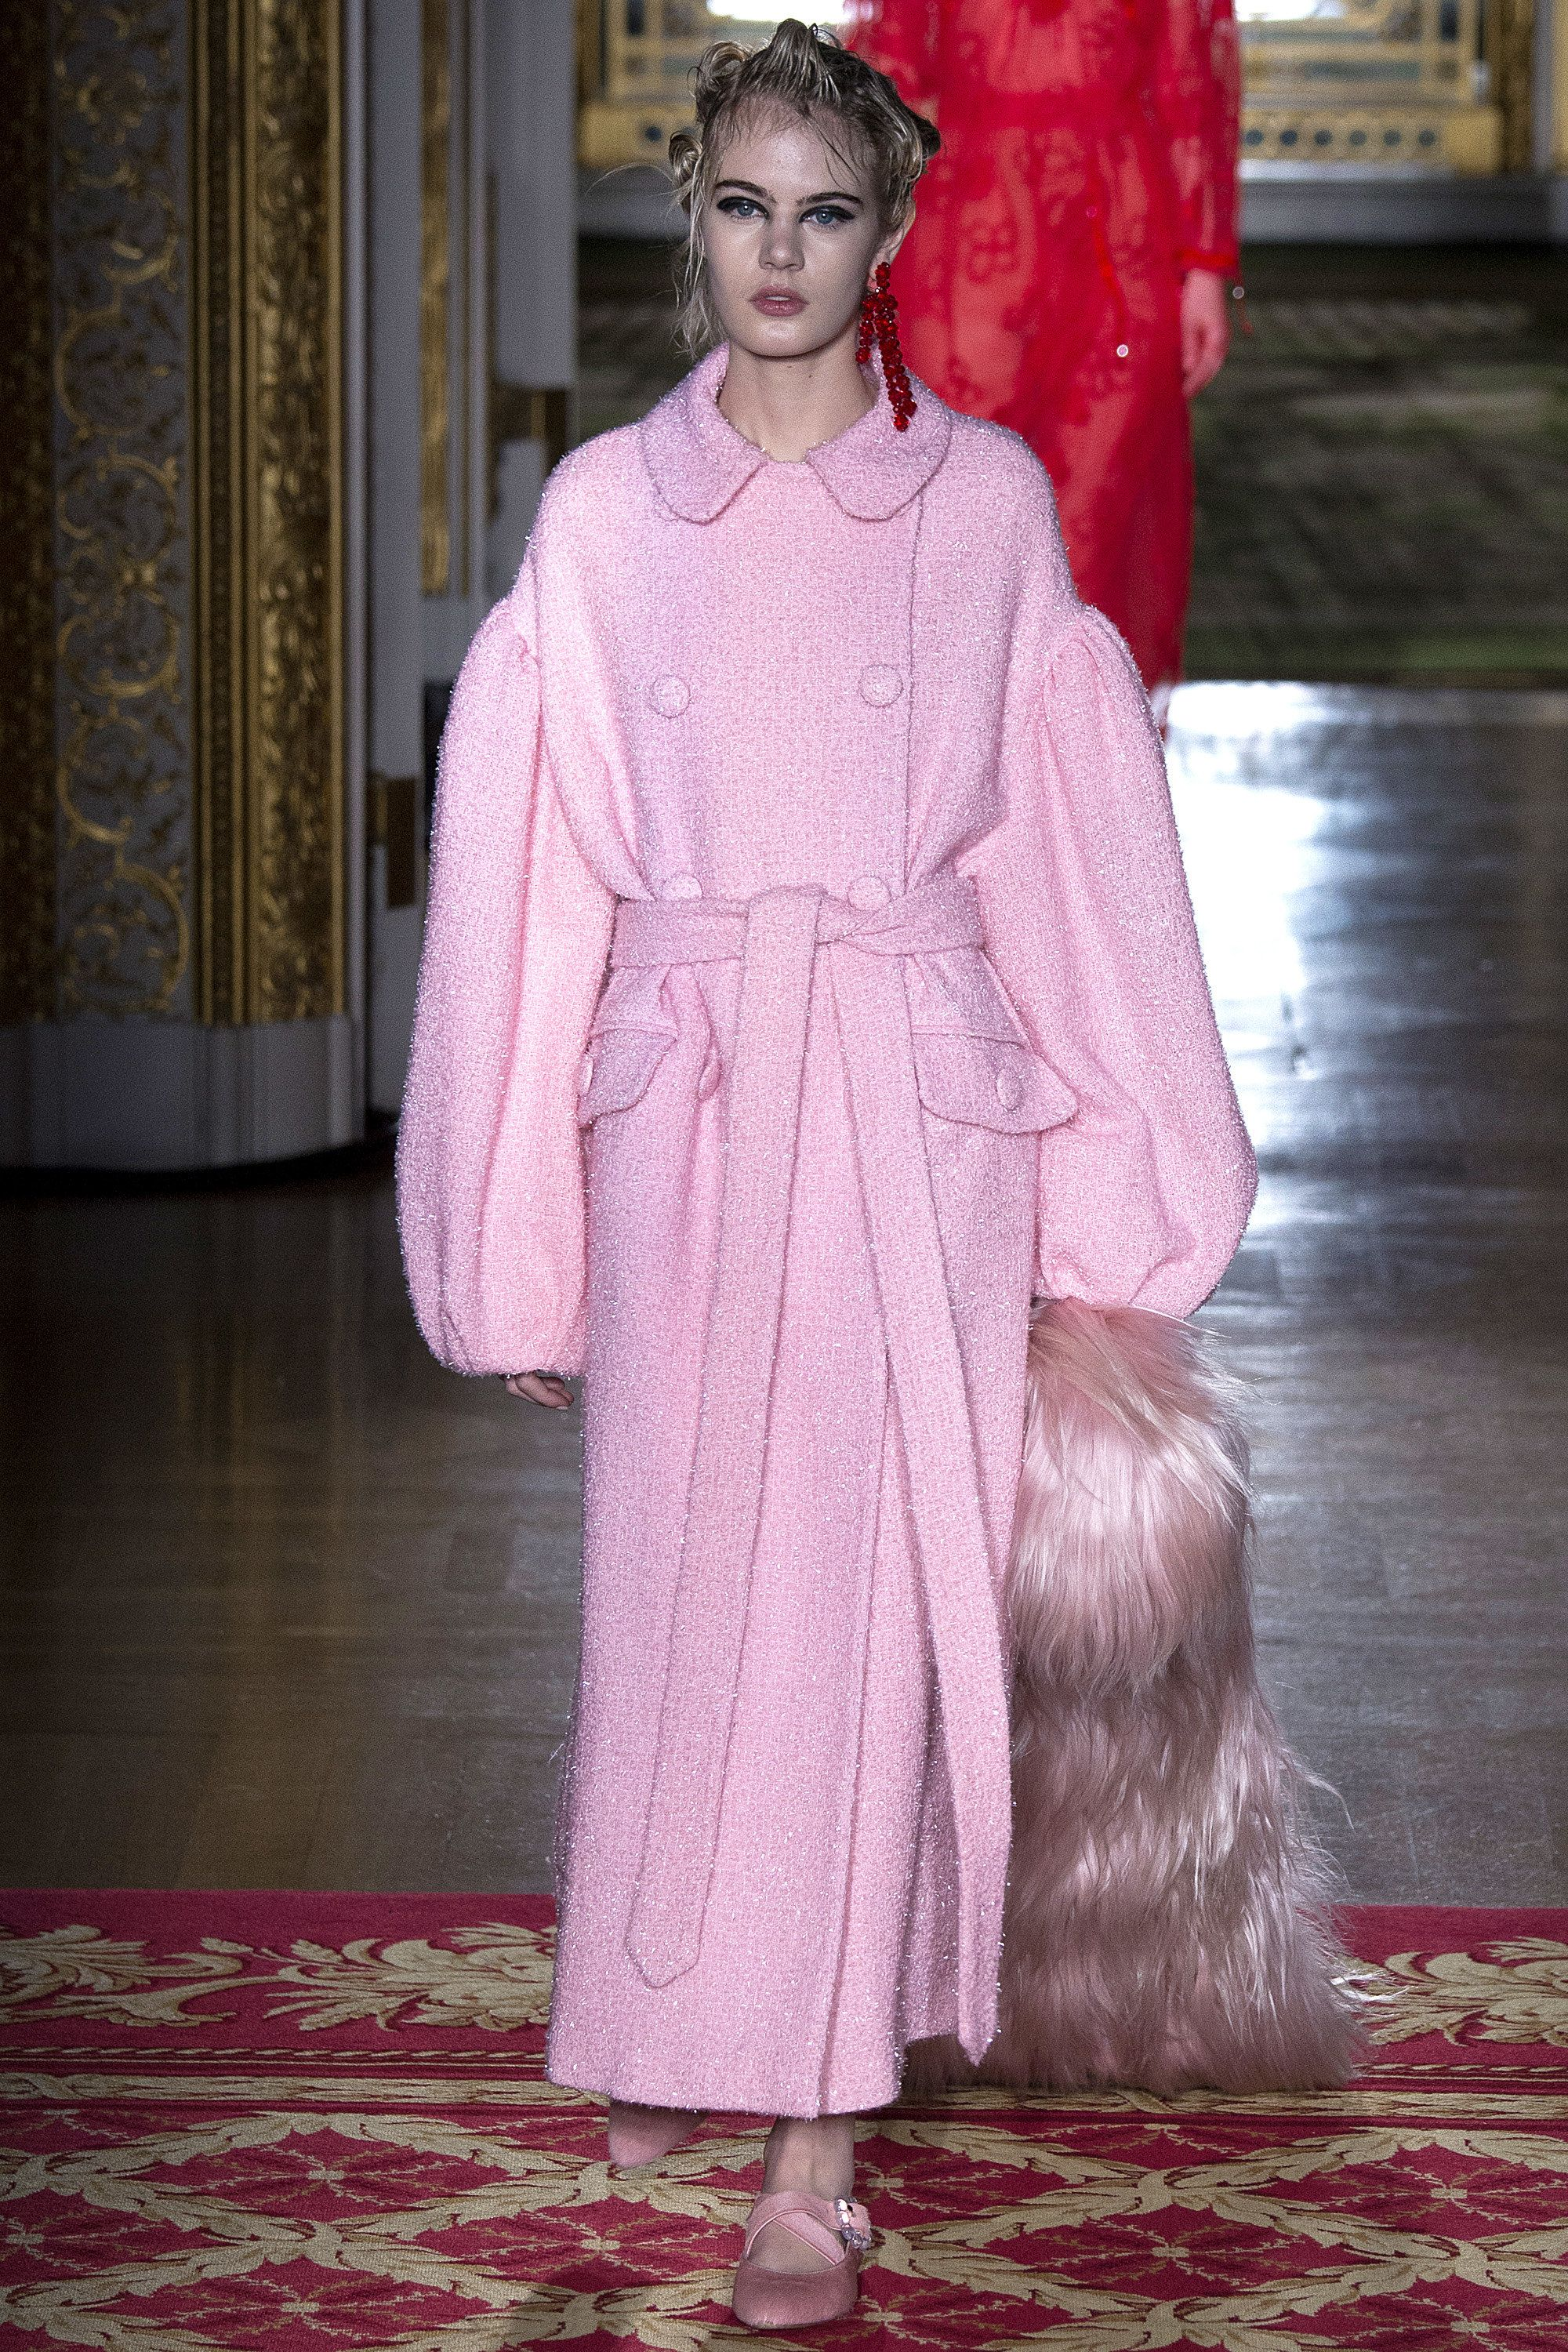 Simone Rocha Fall 2016 Ready-to-Wear Fashion Show  http://www.theclosetfeminist.ca/  http://www.vogue.com/fashion-shows/fall-2016-ready-to-wear/simone-rocha/slideshow/collection#23